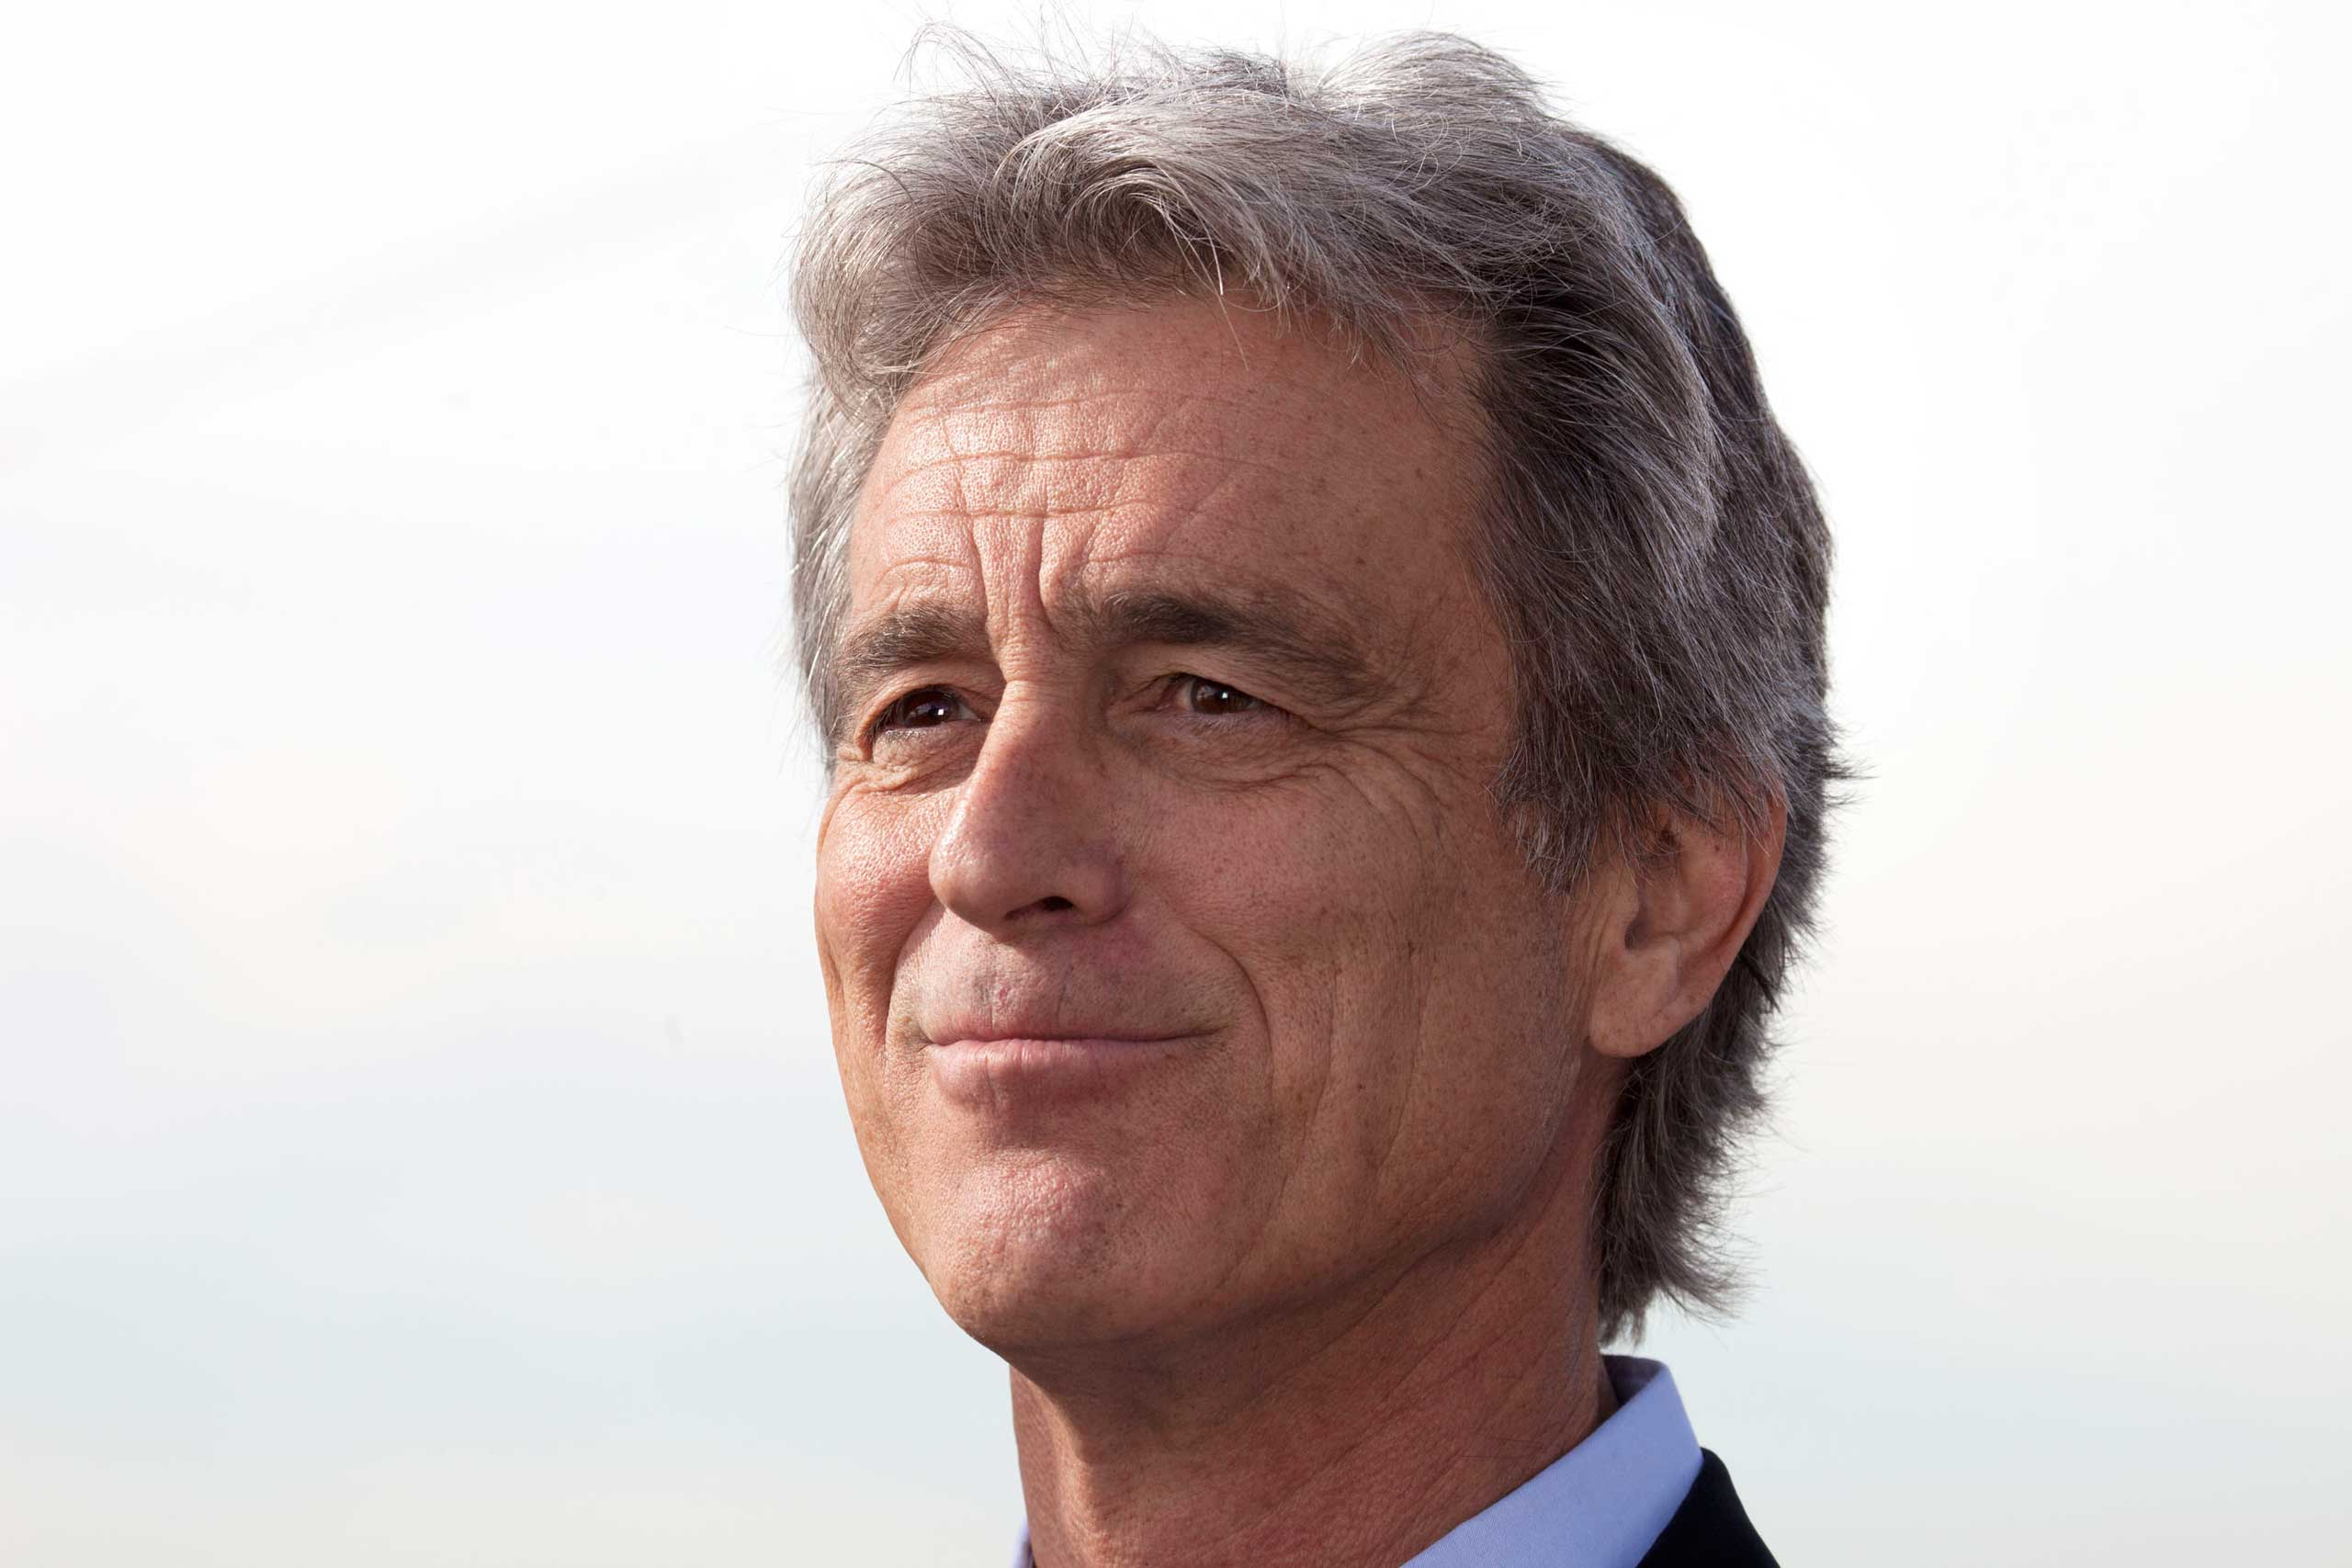 A member of the Kennedy family, Bobby Shriver is a businessman and former Santa Monica City Council member who just lost a bid for an open seat on the Los Angeles County Board of Supervisors.